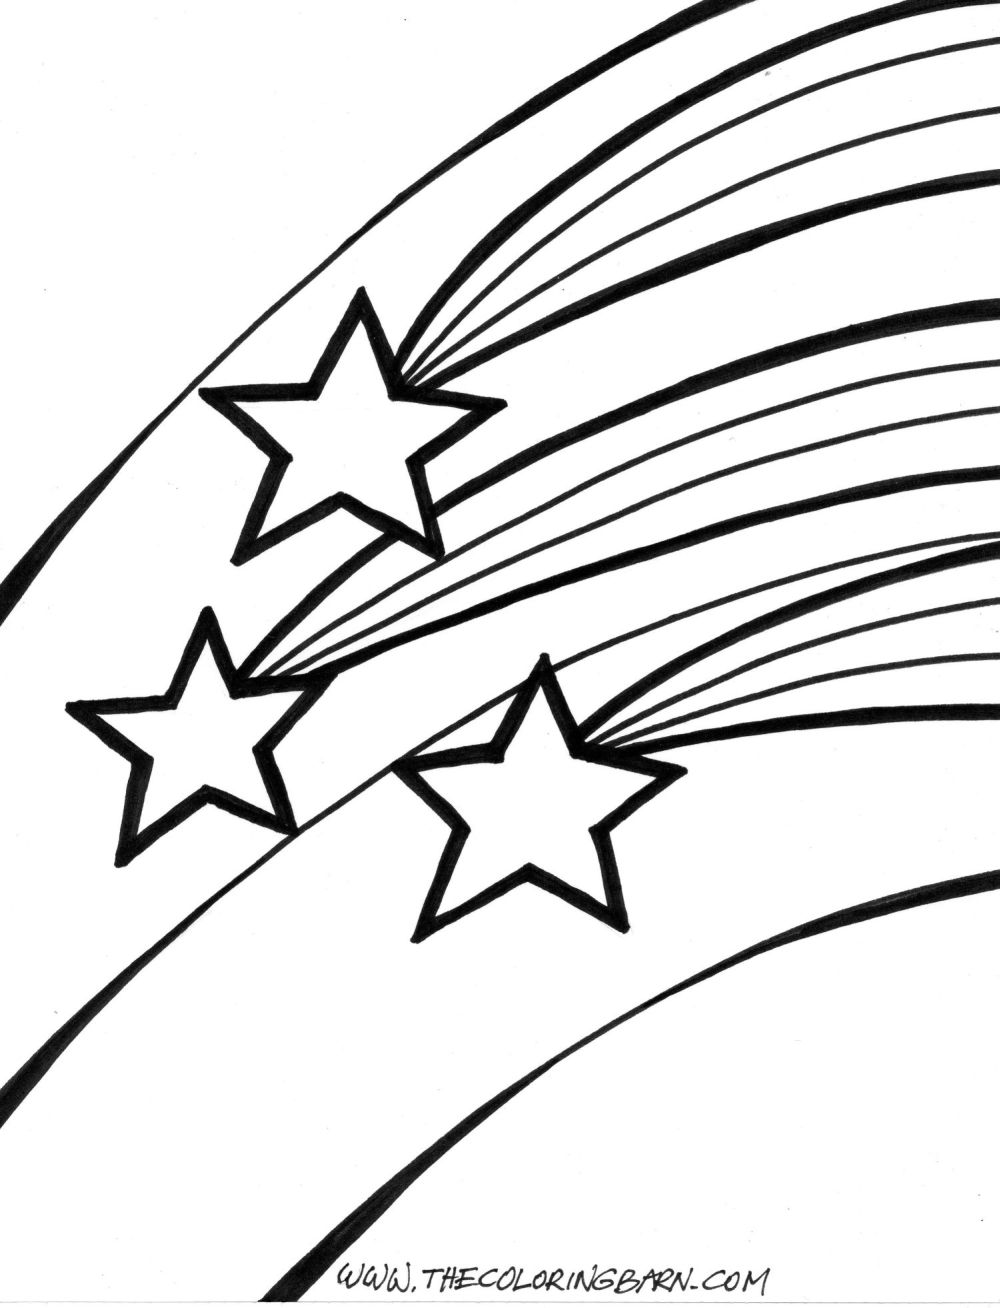 Line Drawing Star : Shooting star line drawing clipart best